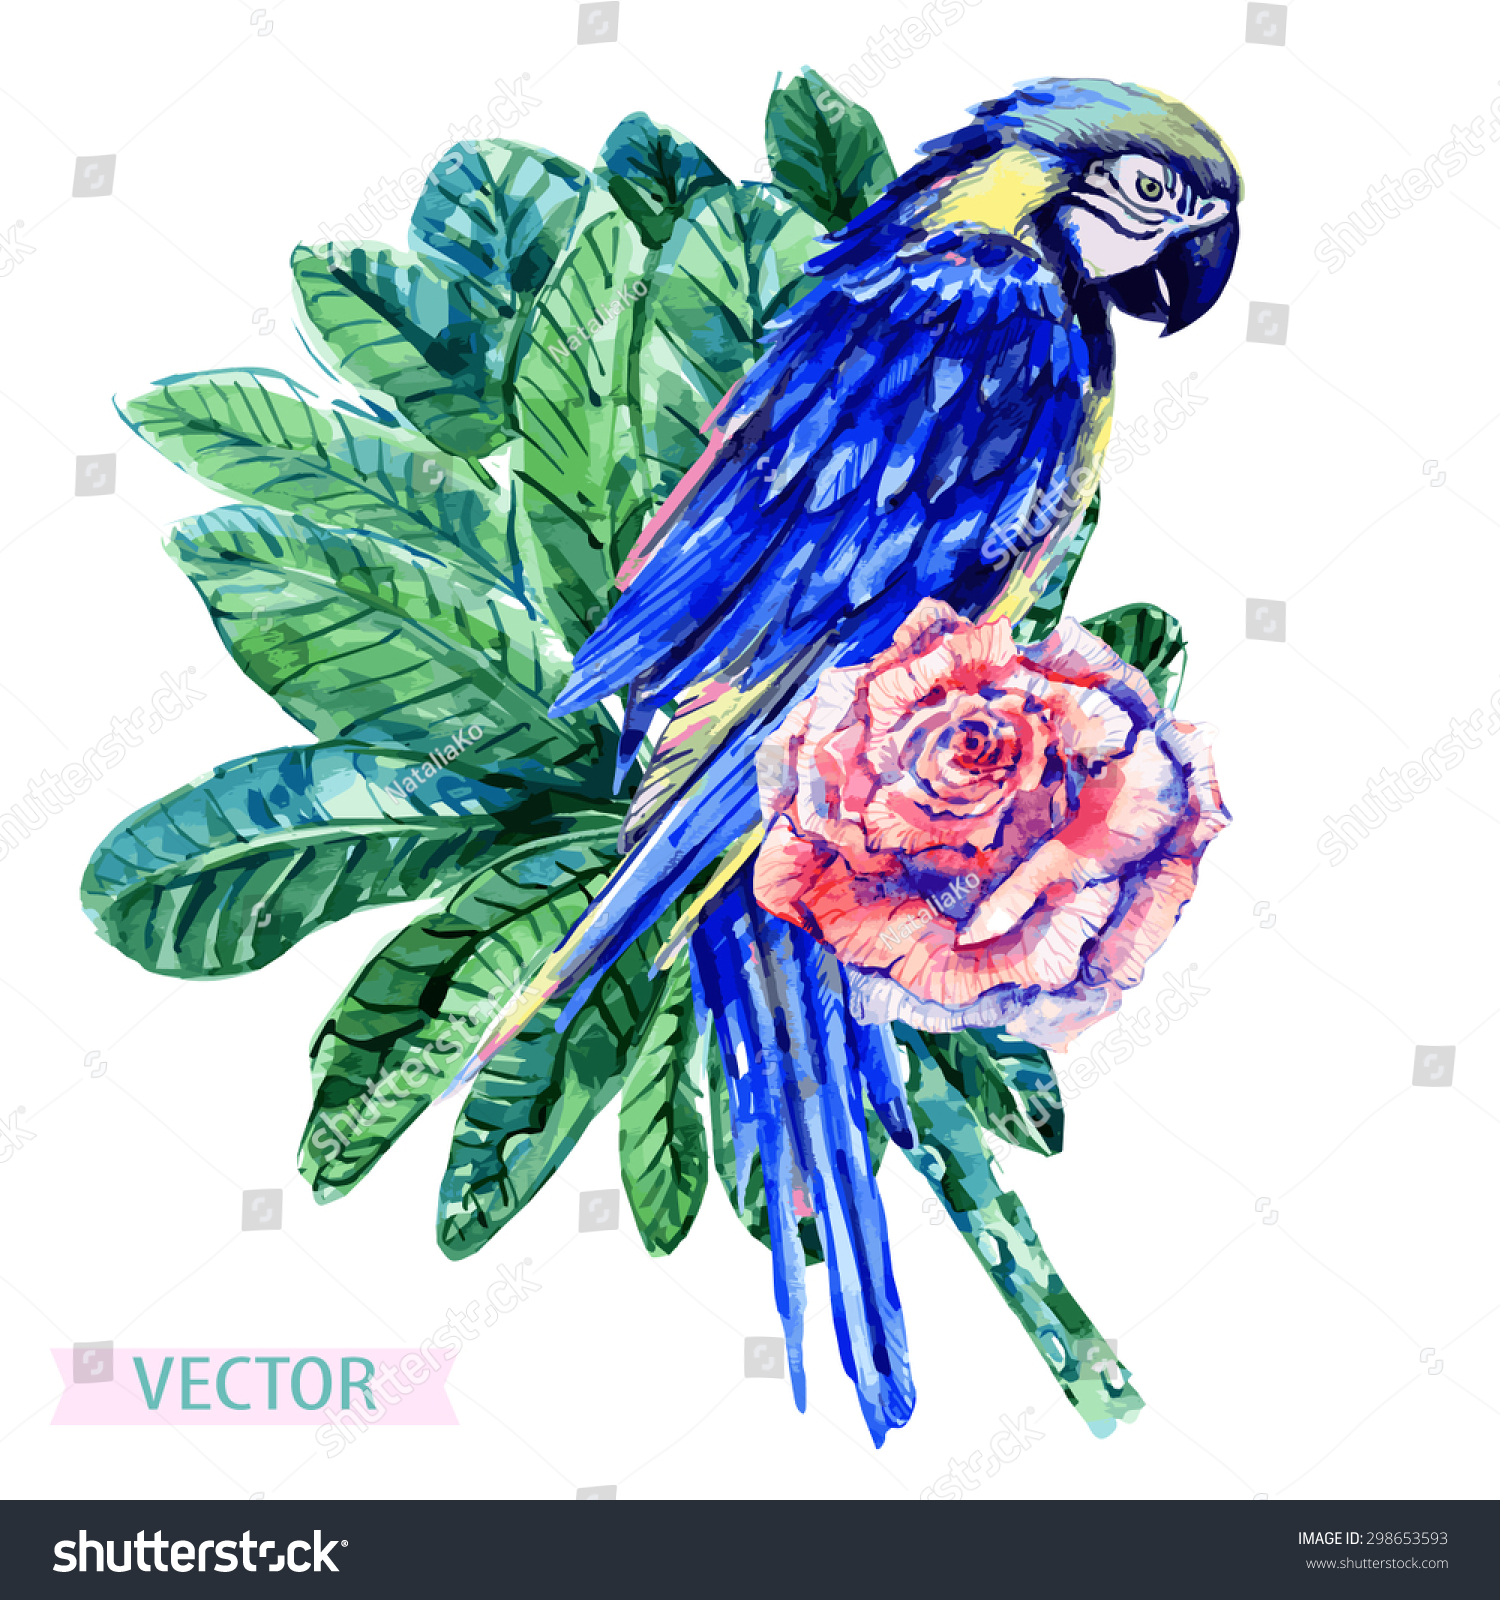 Dhak Tree Information Stock Vector Watercolor Parrot Flower And Tropical Jungle